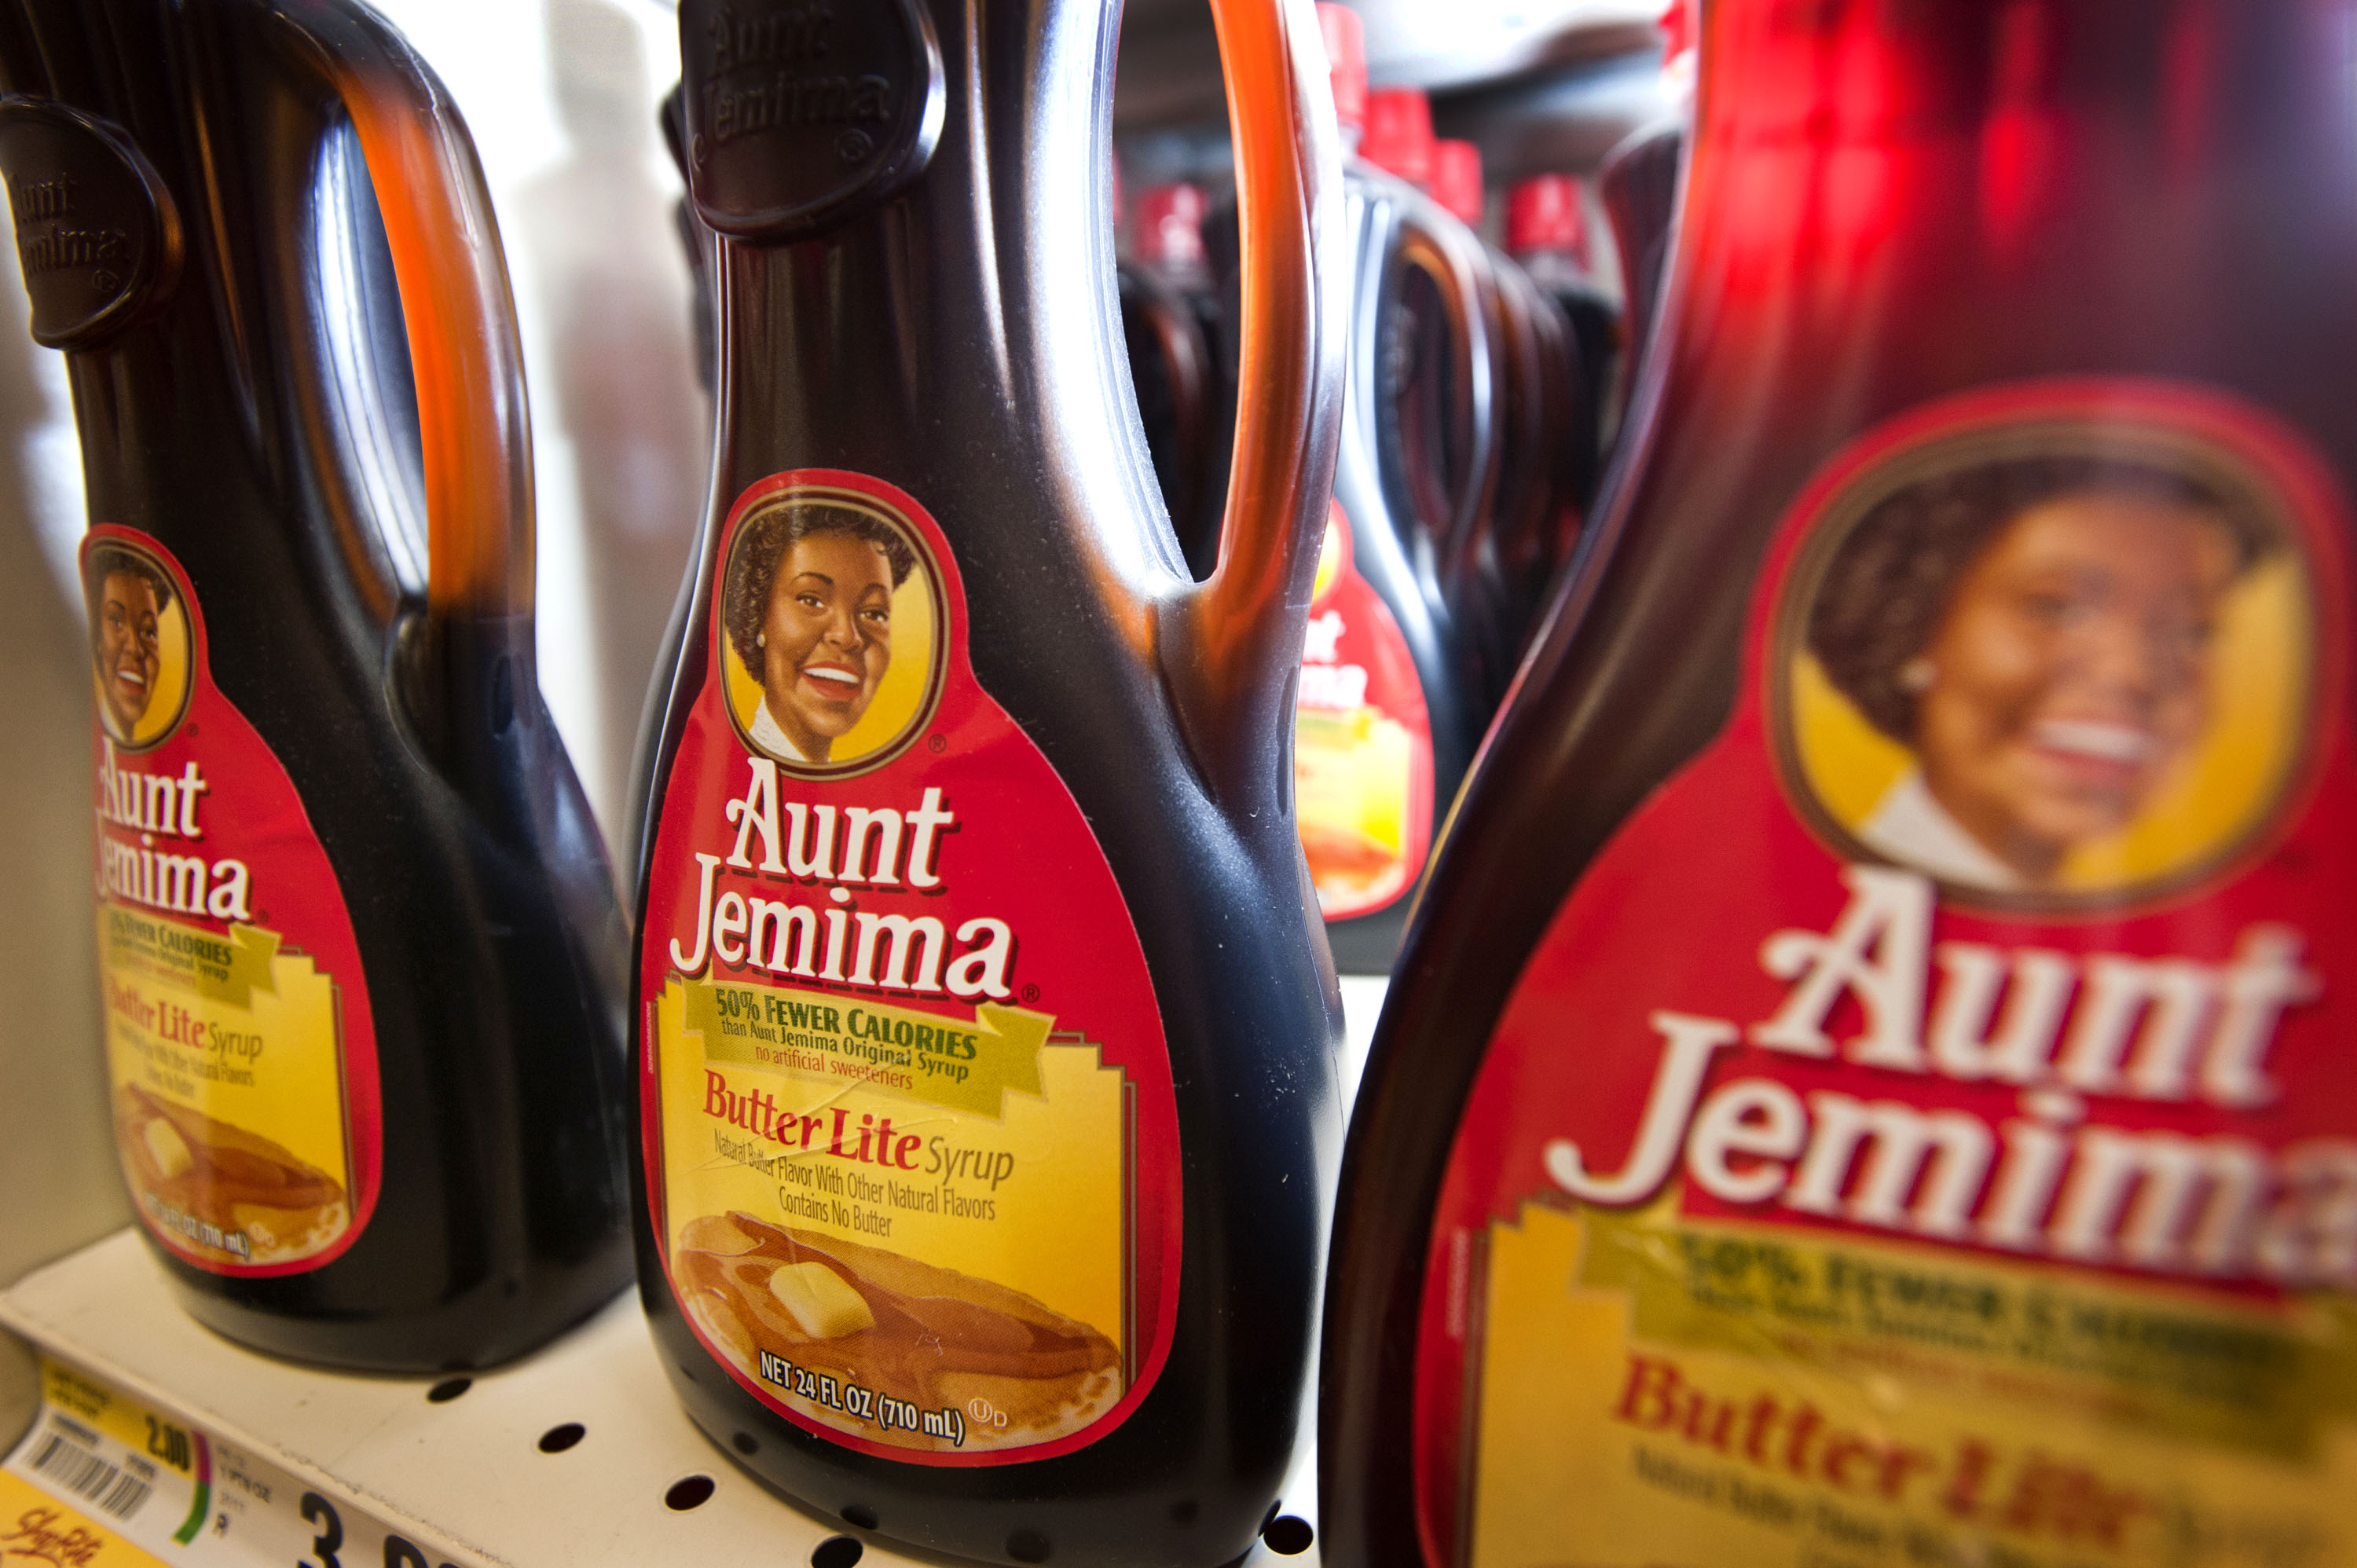 Bottles of PepsiCo Inc. Aunt Jemima syrup are displayed for sale at a ShopRite Holdings Ltd. grocery store in Stratford, Connecticut, on Aug. 3, 2011.